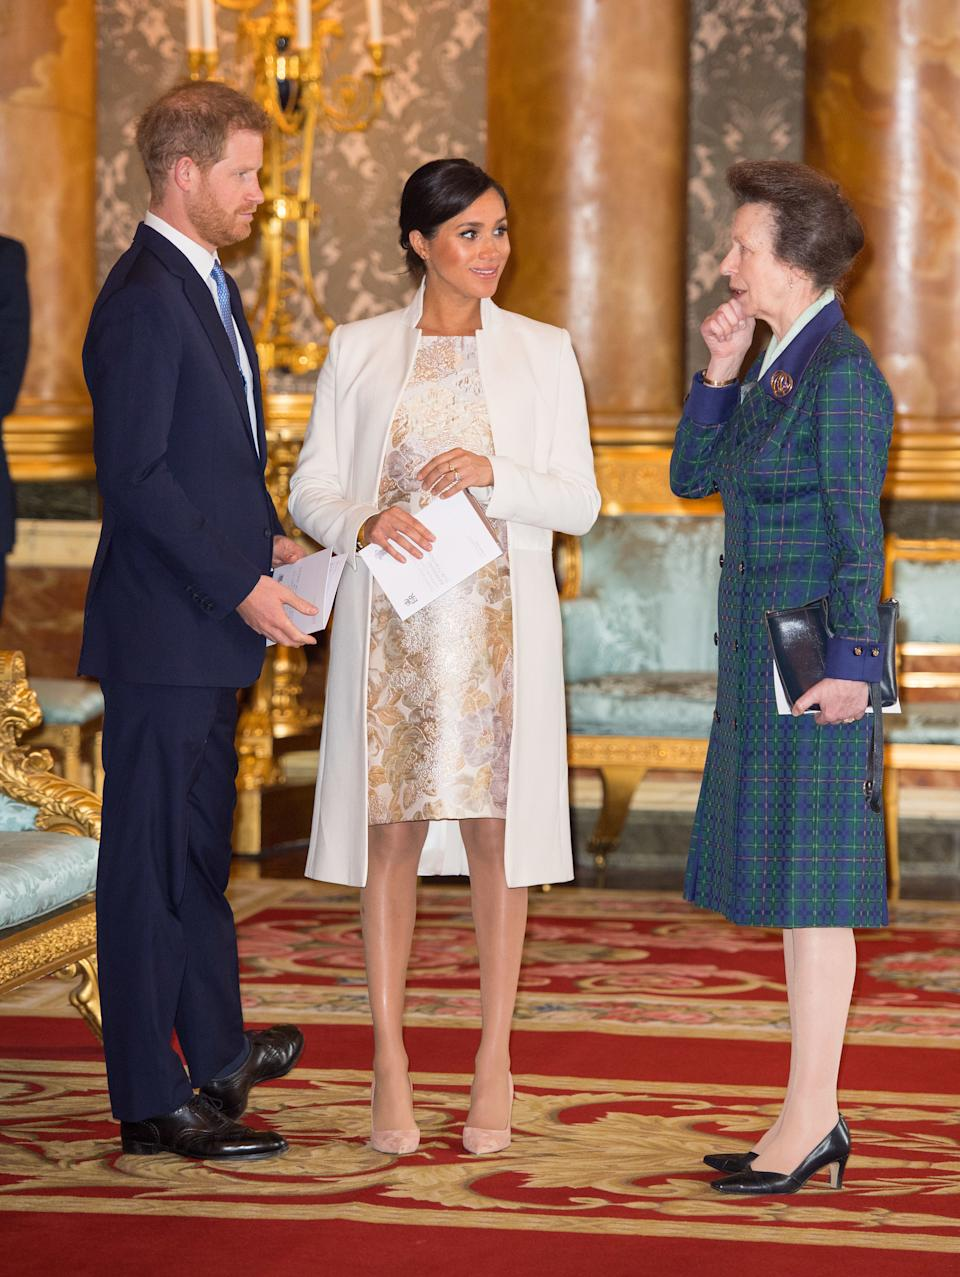 Britain's Prince Harry, Duke of Sussex, (L) and Britain's Meghan, Duchess of Sussex (C) and Britain's Princess Anne, Princess Royal, (R) attend a reception to mark the 50th Anniversary of the investiture of The Prince of Wales at Buckingham Palace in London on March 5, 2019. - The Queen hosted a reception to mark the Fiftieth Anniversary of the investiture of Britain's Prince Charles, her son, as the Prince of Wales. Prince Charles was created The Prince of Wales aged 9 on July 26th 1958 and was formally invested with the title by Her Majesty The Queen on July 1st 1969 at Caernarfon Castle. (Photo by Dominic Lipinski / POOL / AFP)        (Photo credit should read DOMINIC LIPINSKI/AFP via Getty Images)